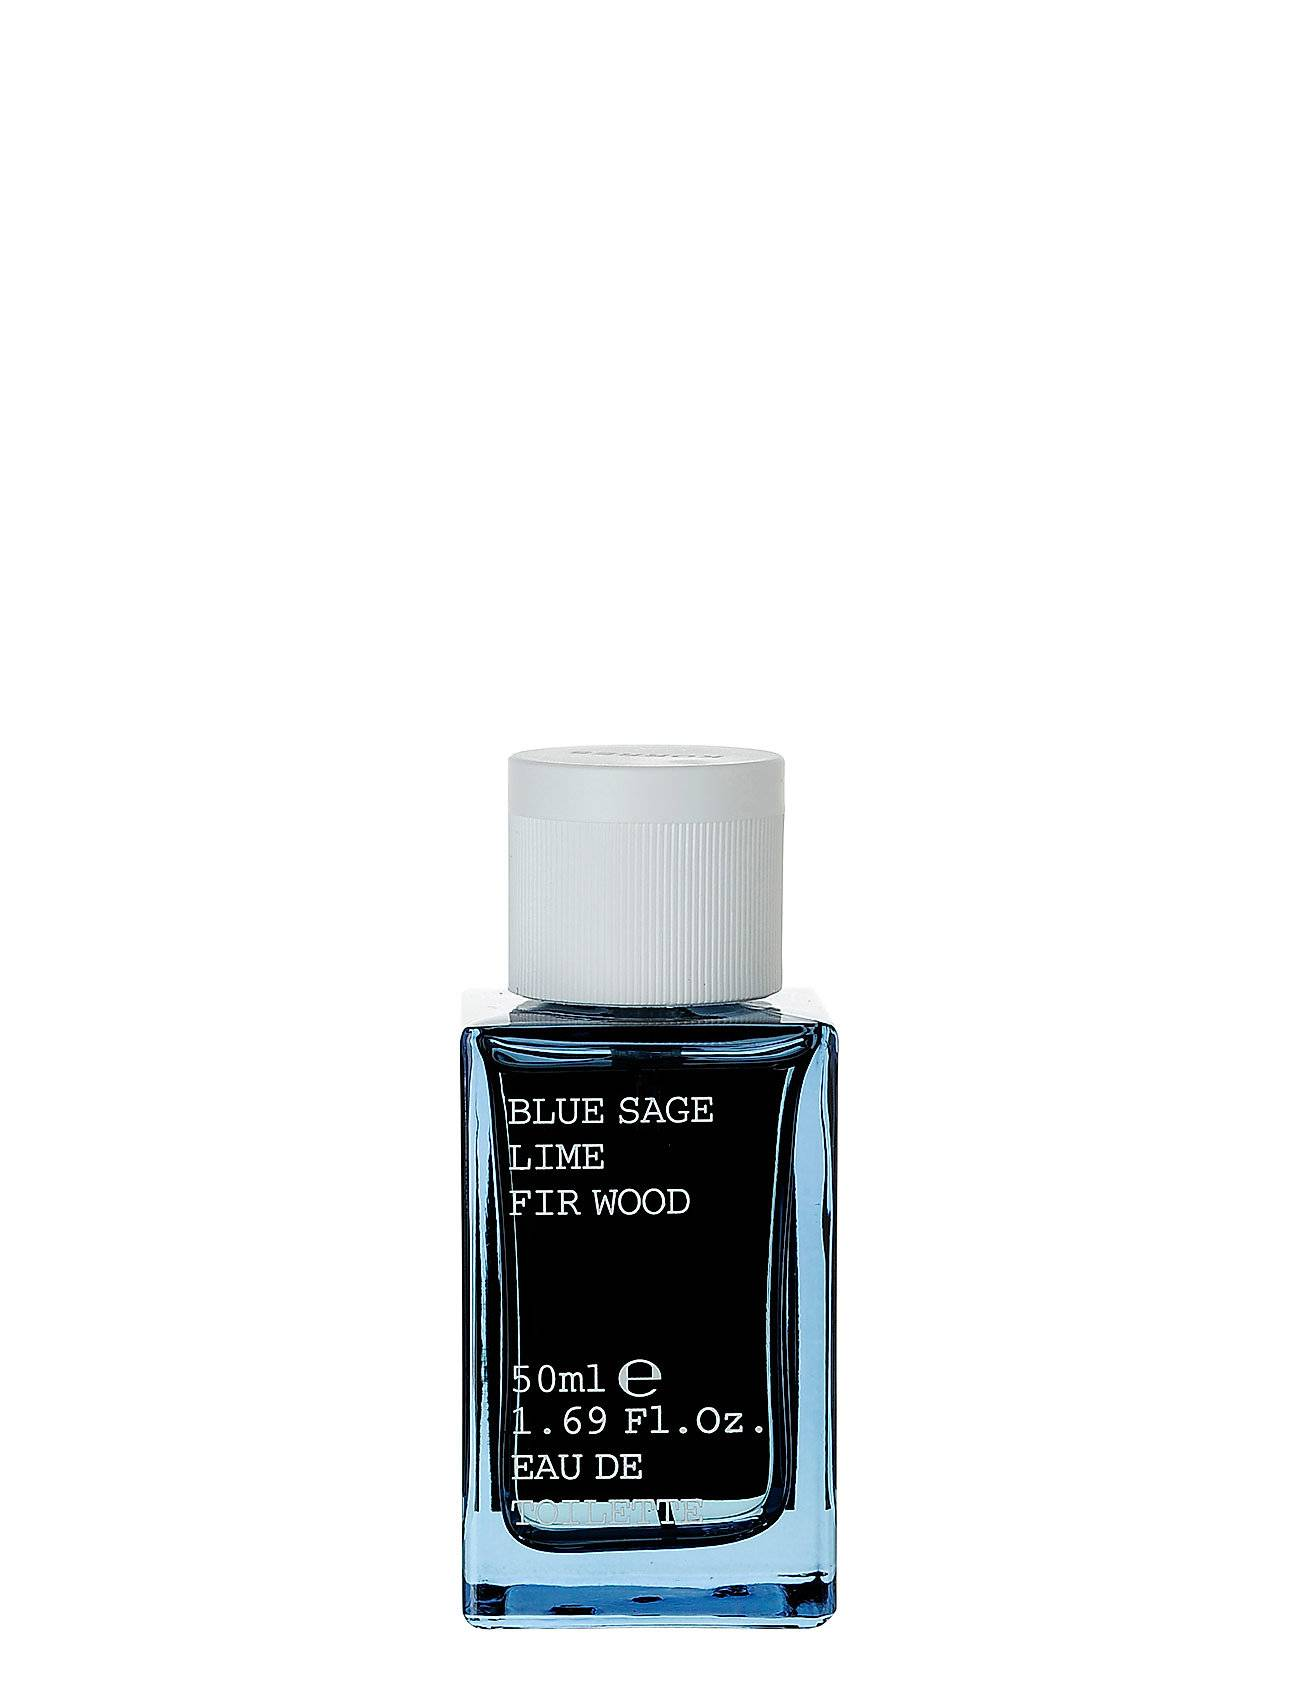 KORRES Blue Sage Lime Edt 50ml